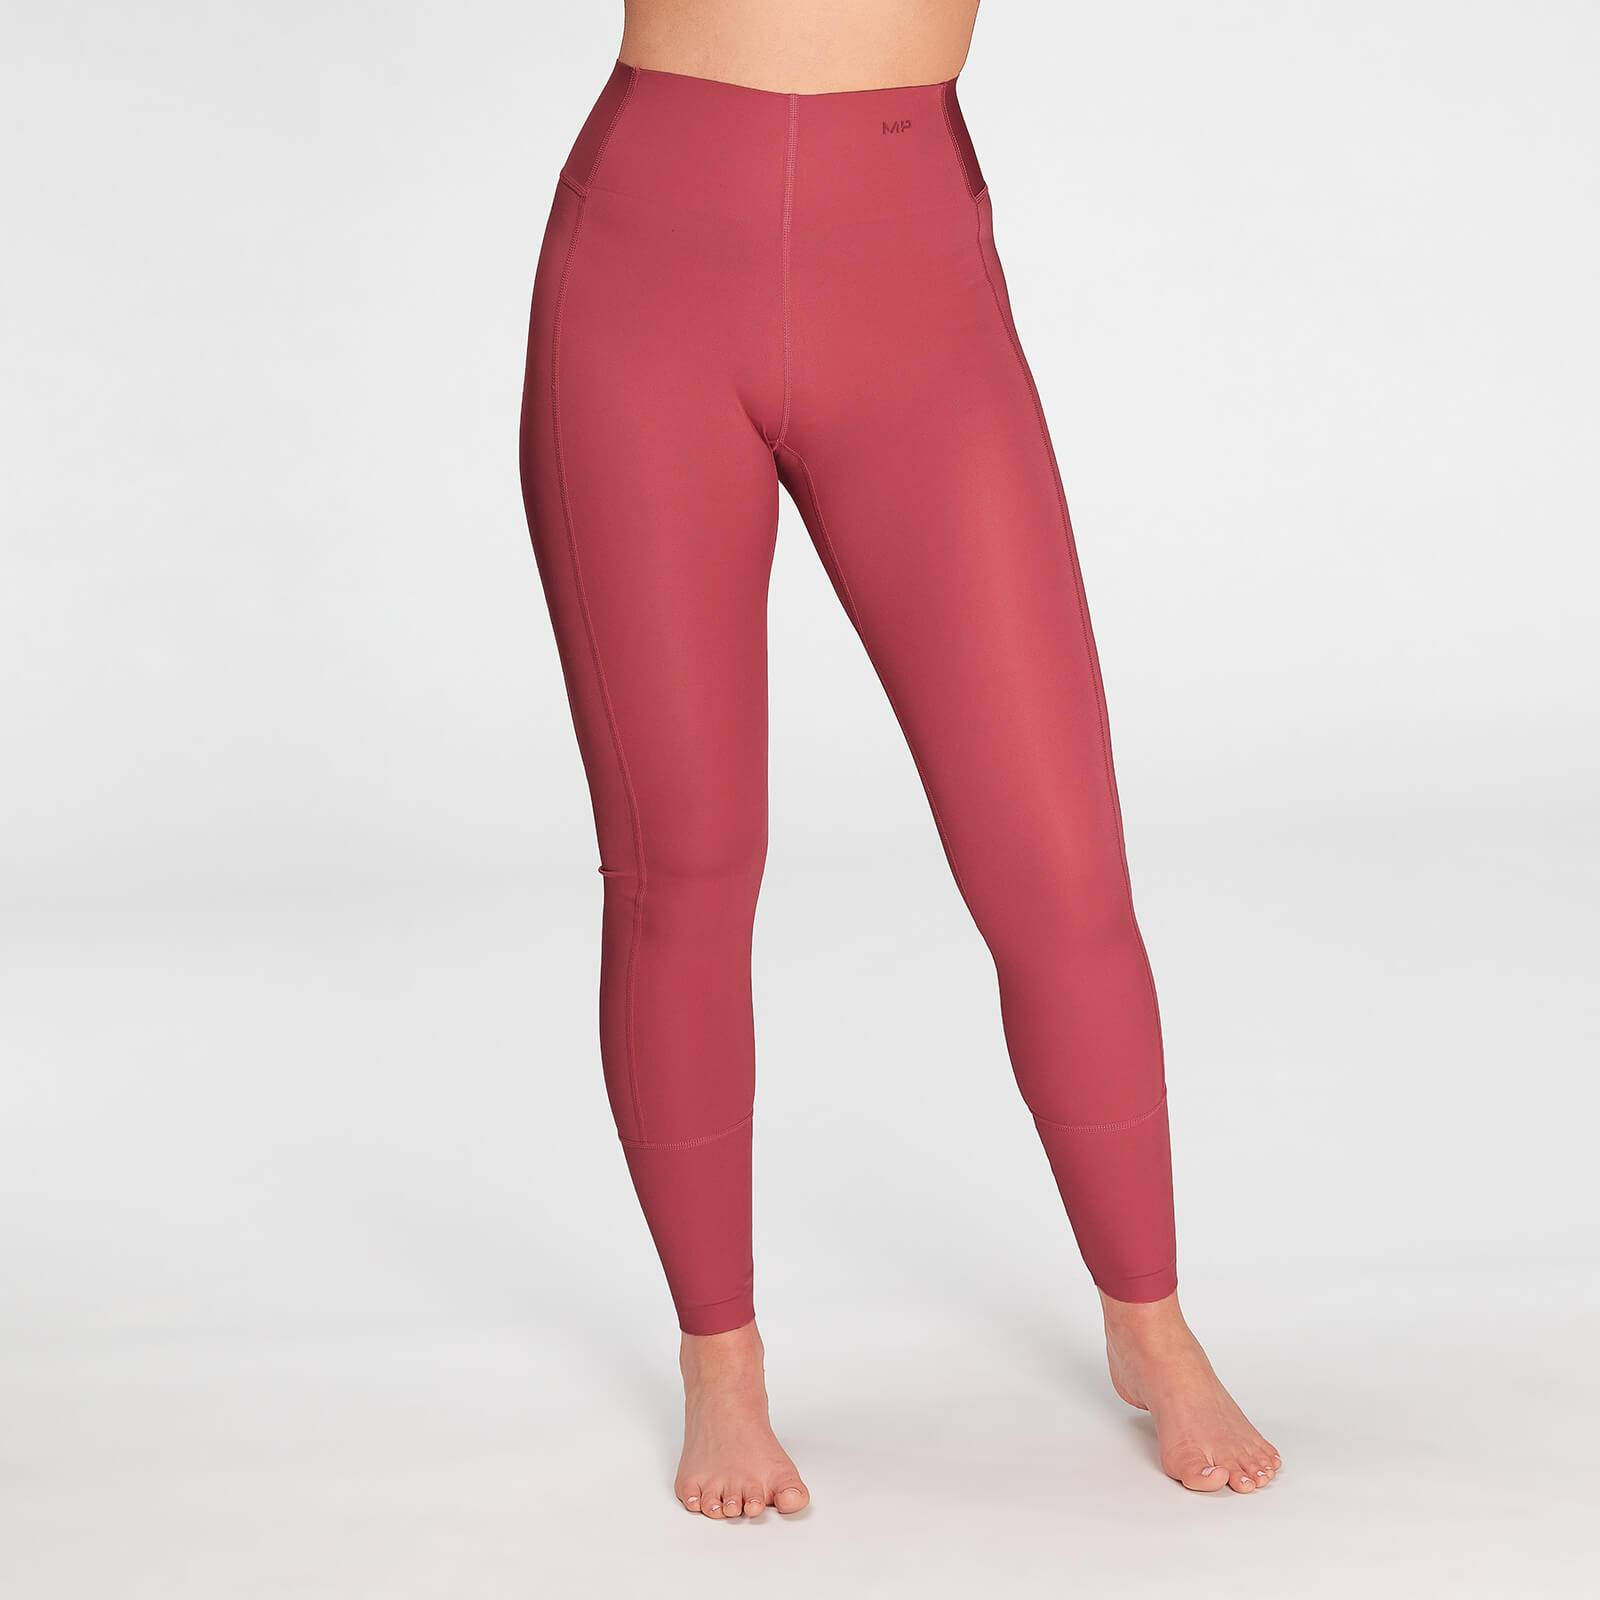 Mp Women's Coosure Repreve® Leggings - Berry Pink - XL